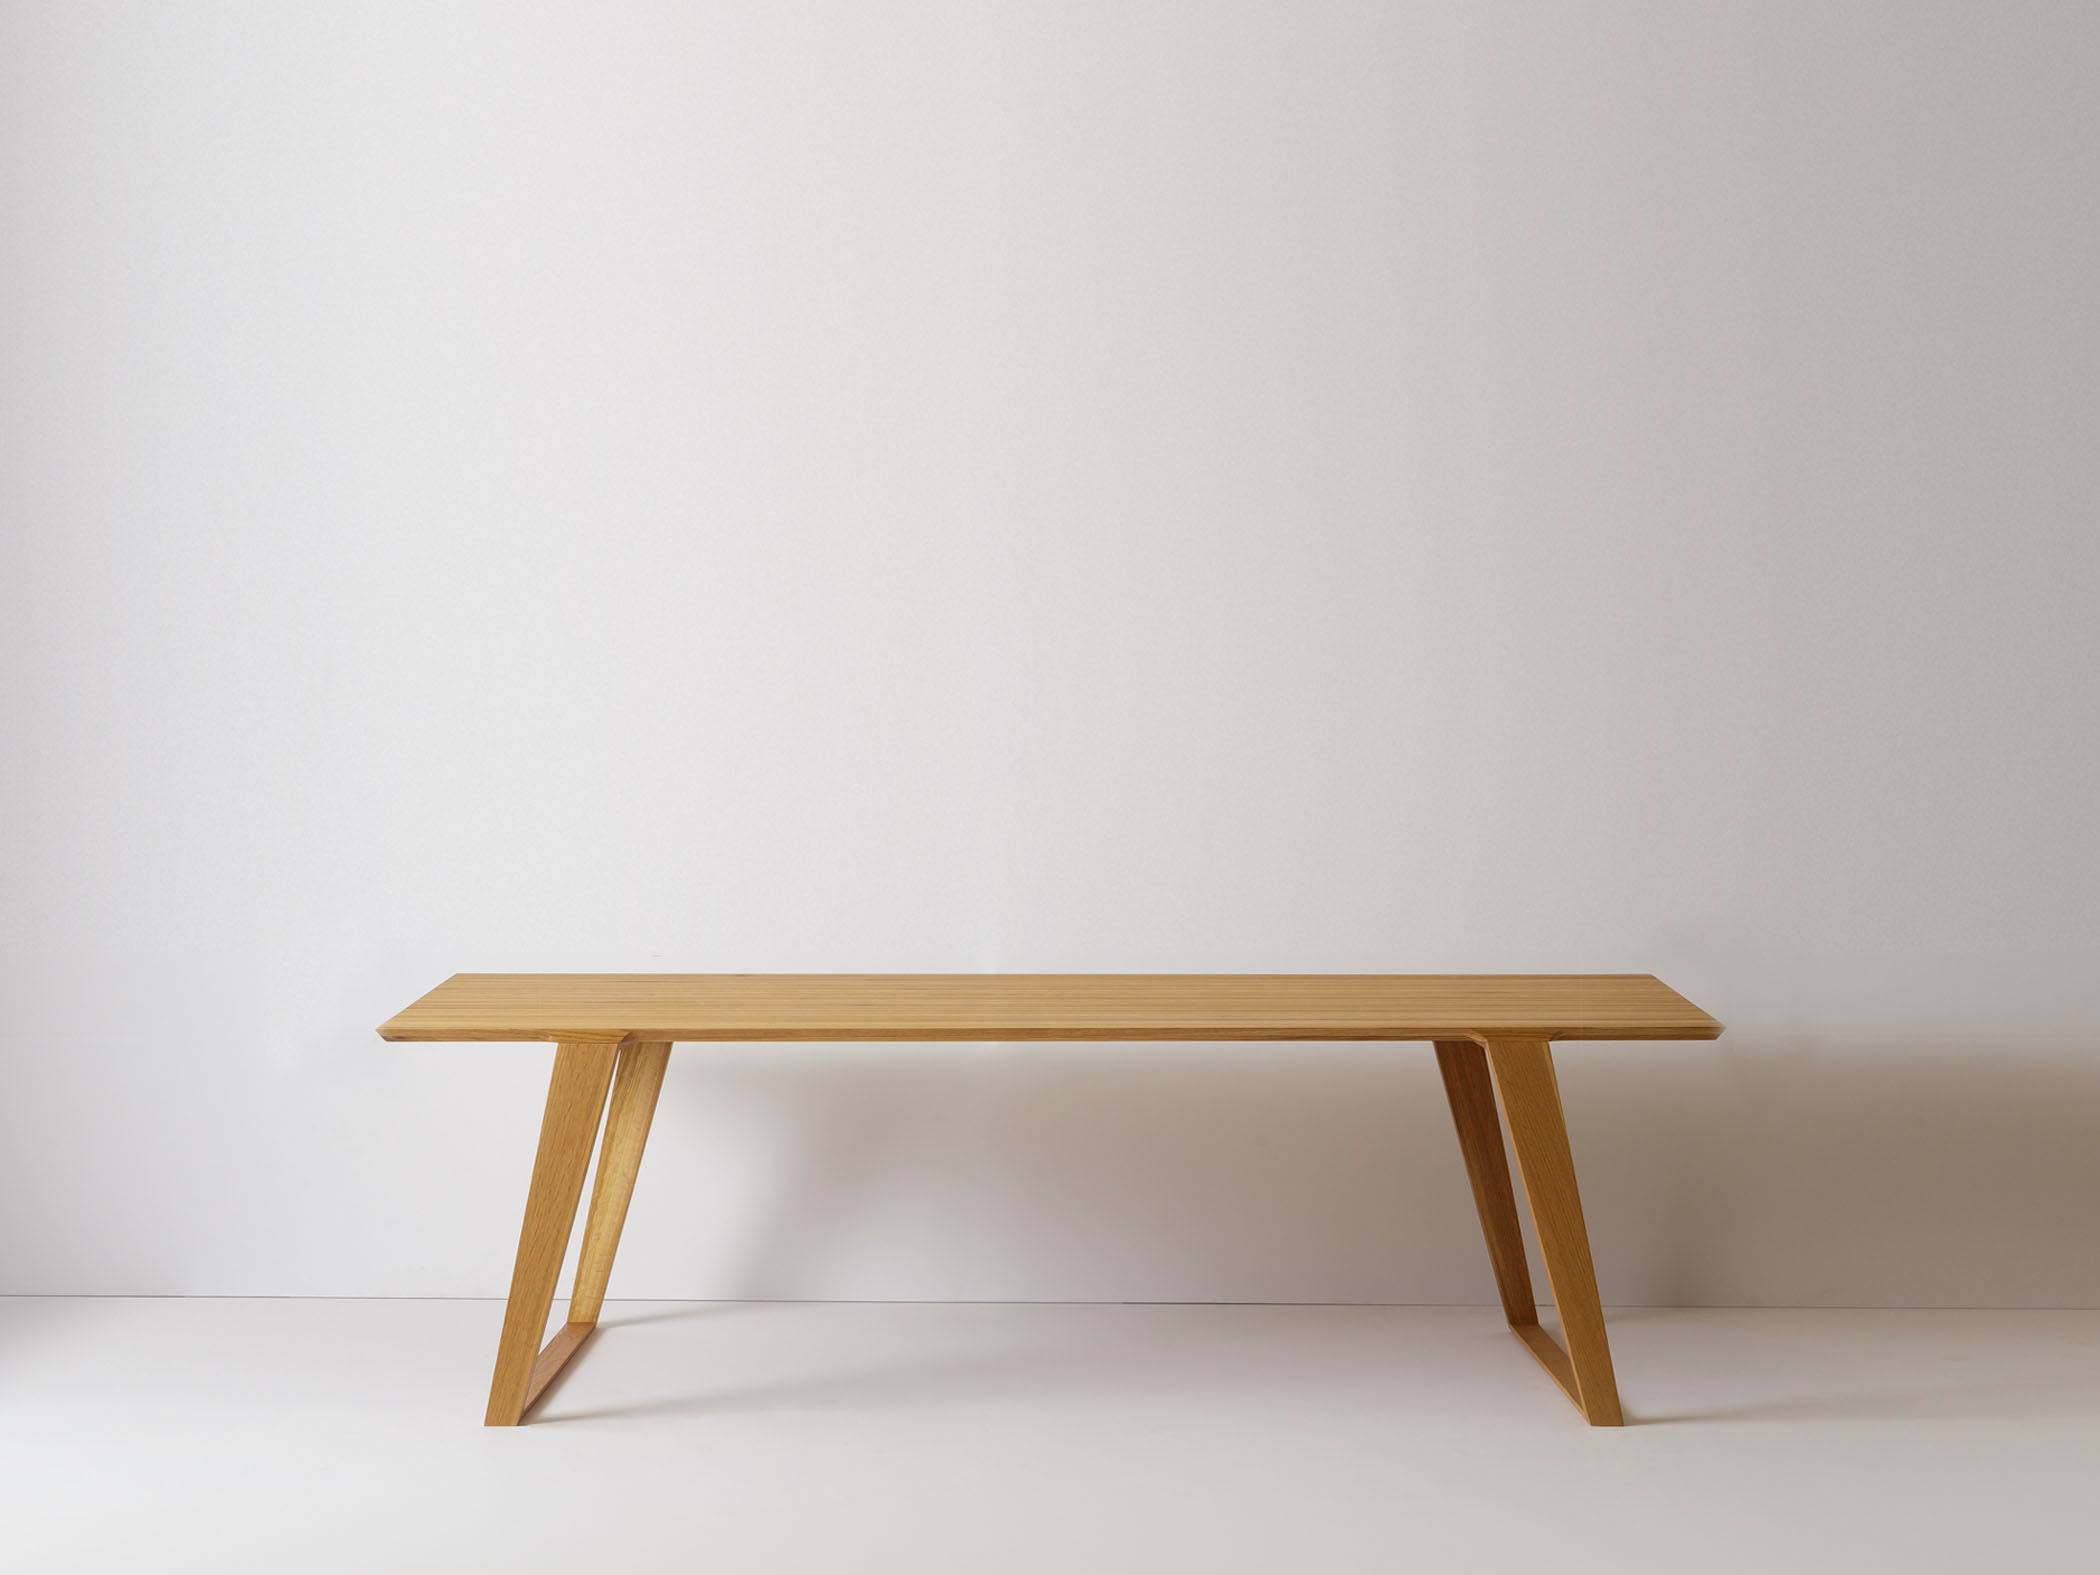 Modern contemporary bench or coffee table in solid white oak